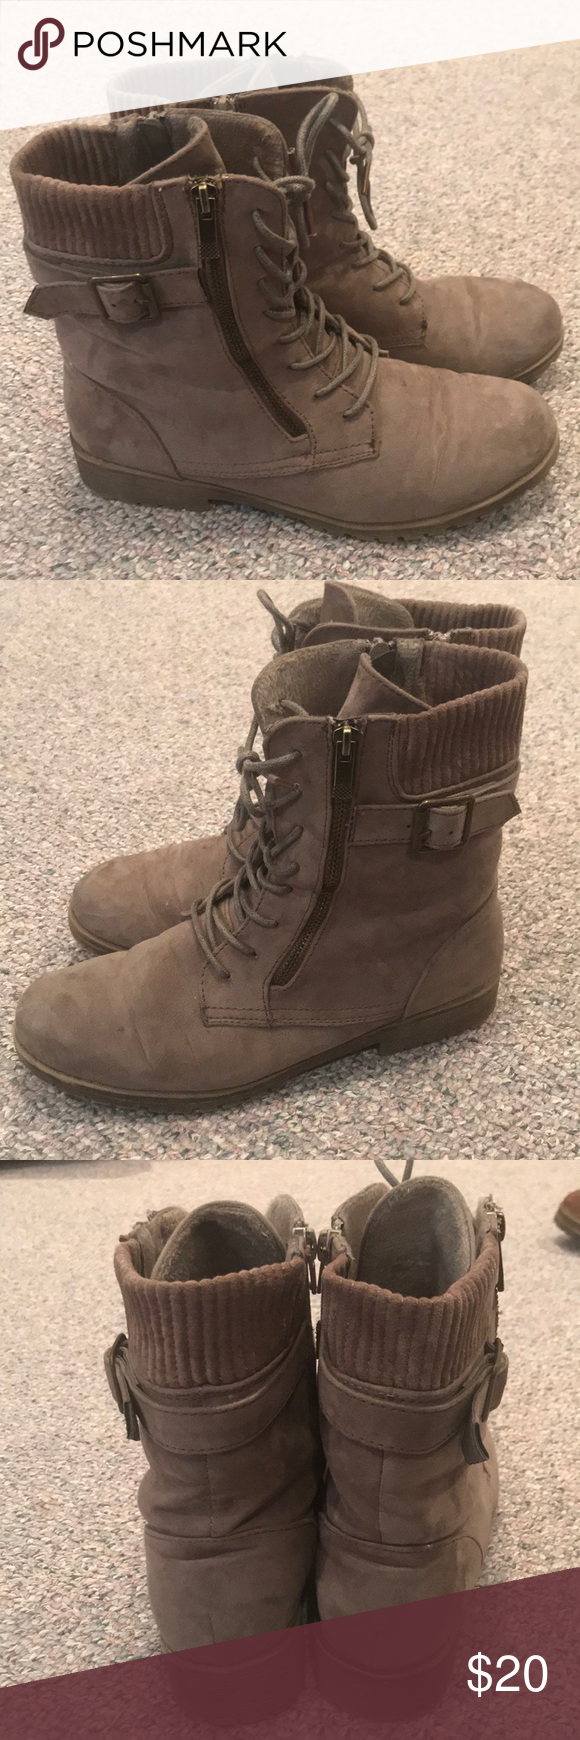 5e07ee5017c Echo Bay Warrior suede combat boot Good condition, only worn a ...